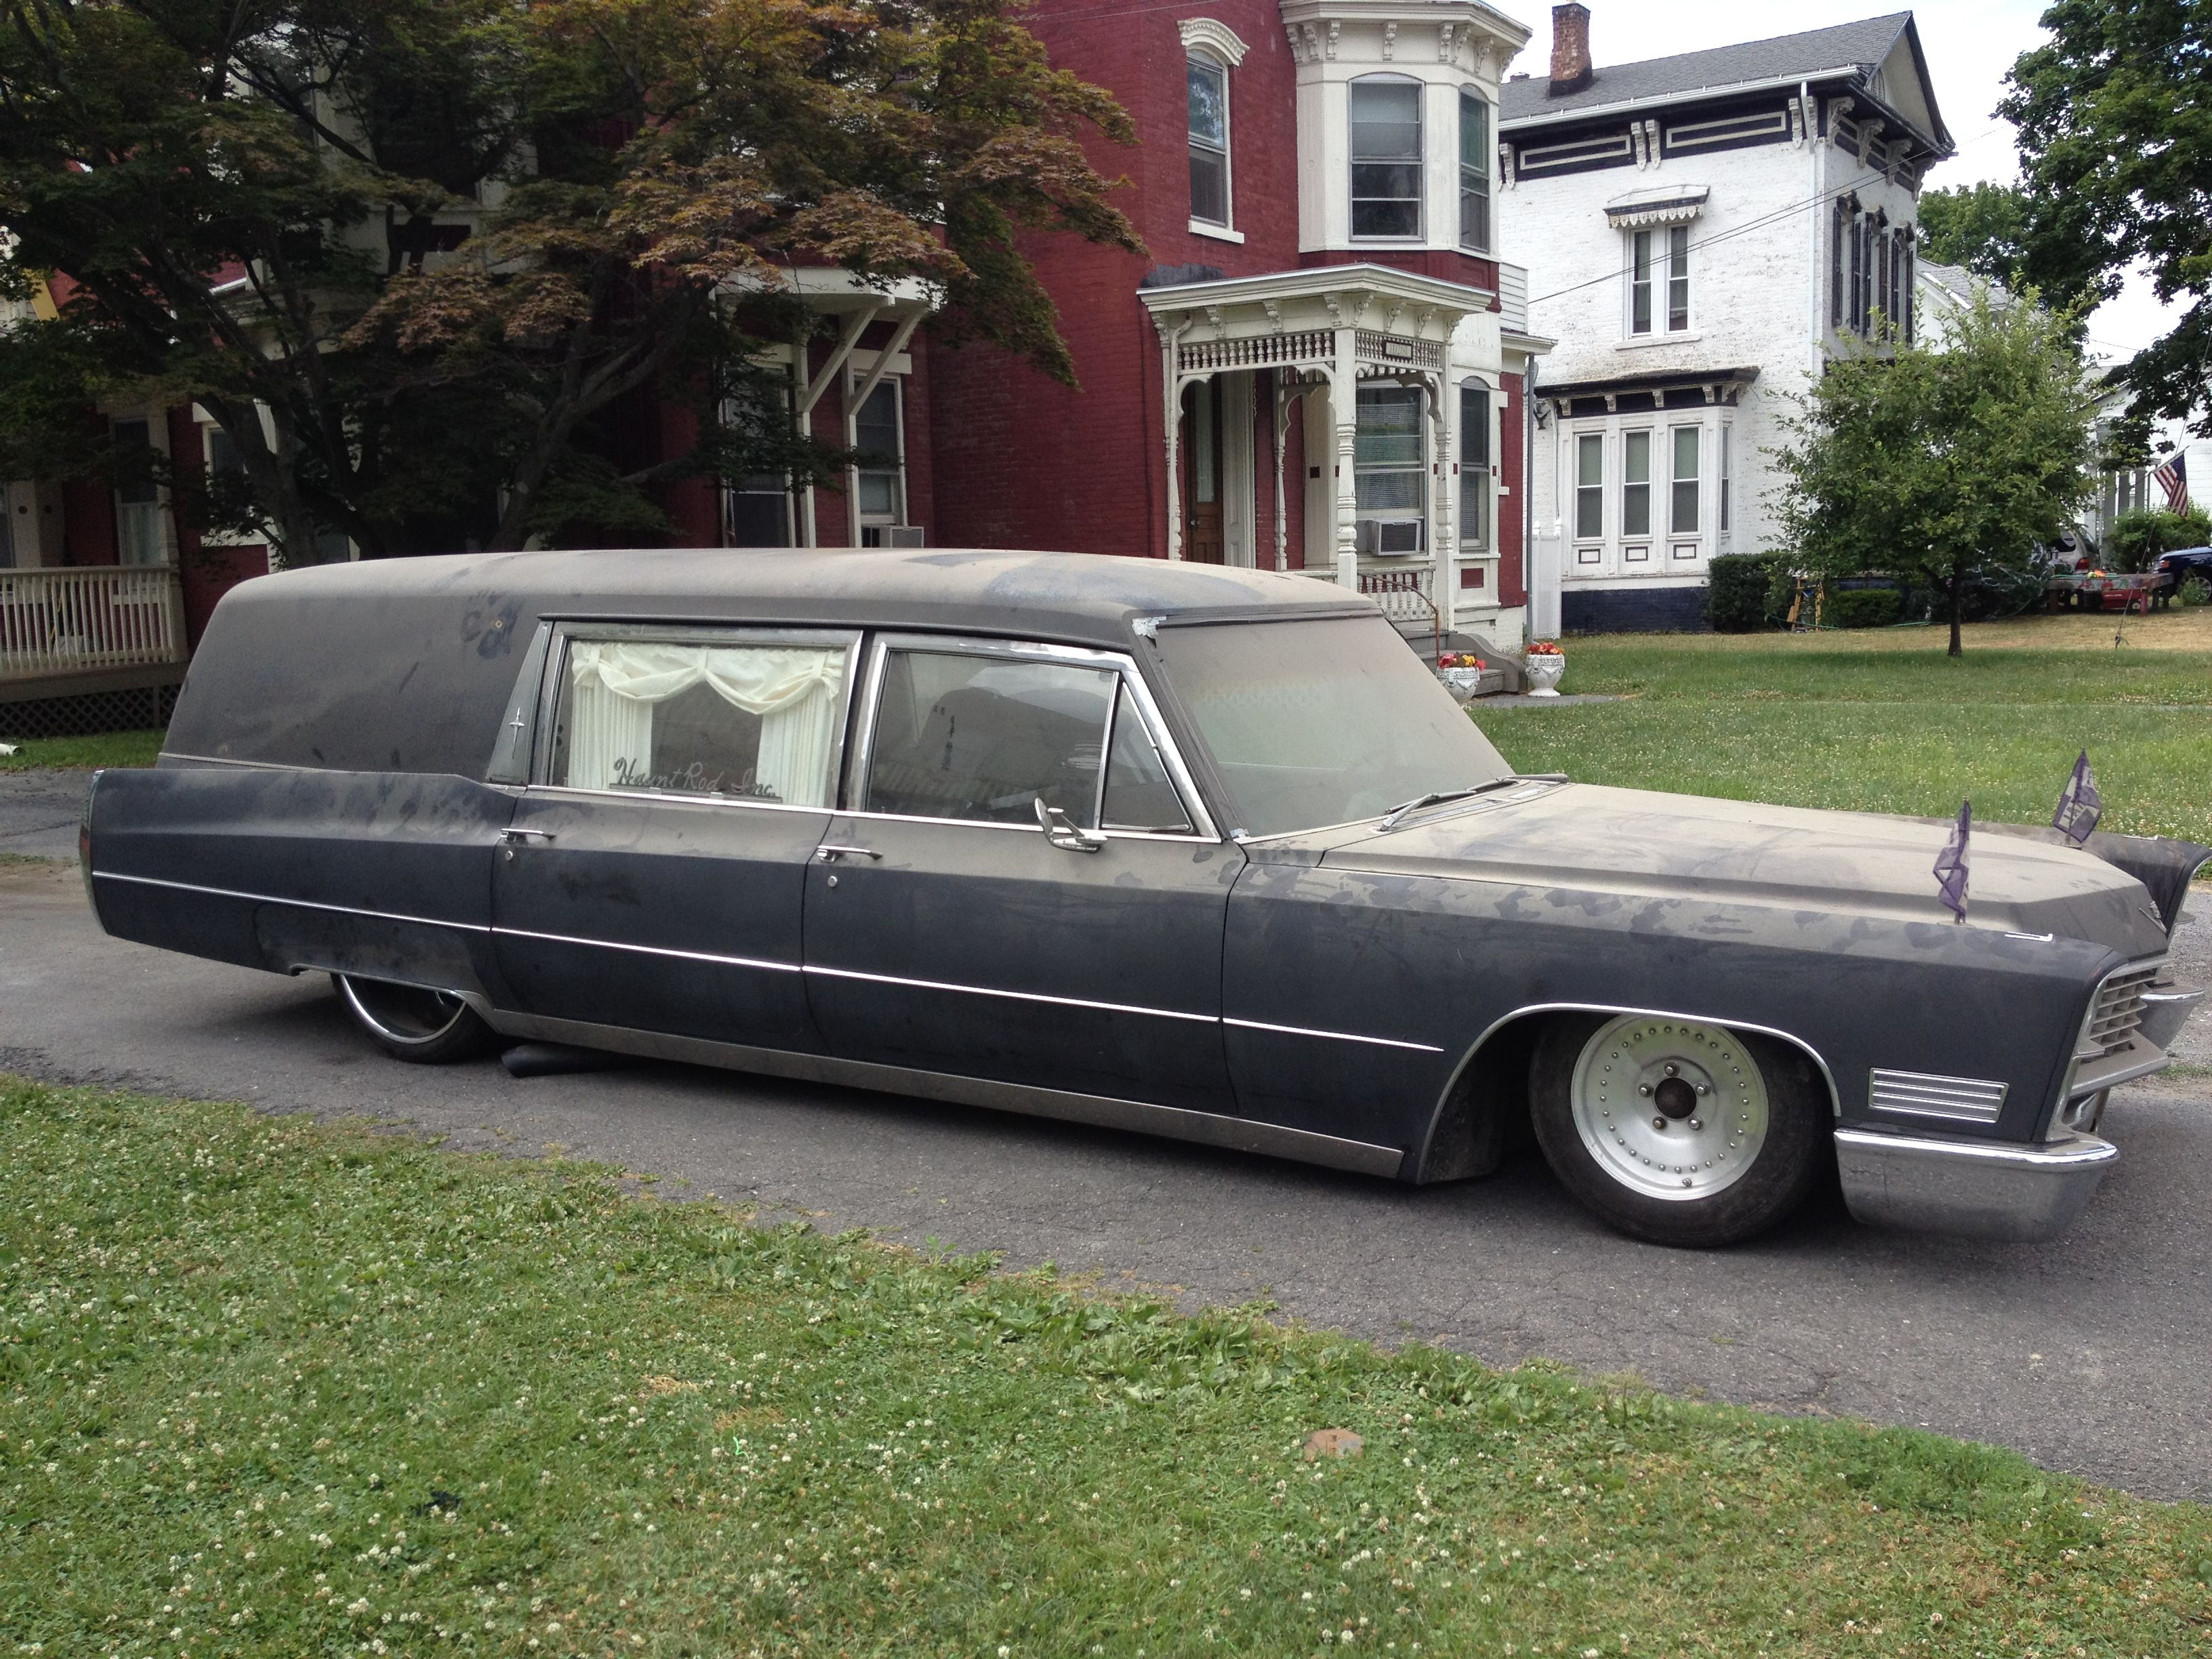 1967 Cadillac Hearse | Hot Rods | Cars motorcycles:__cat__